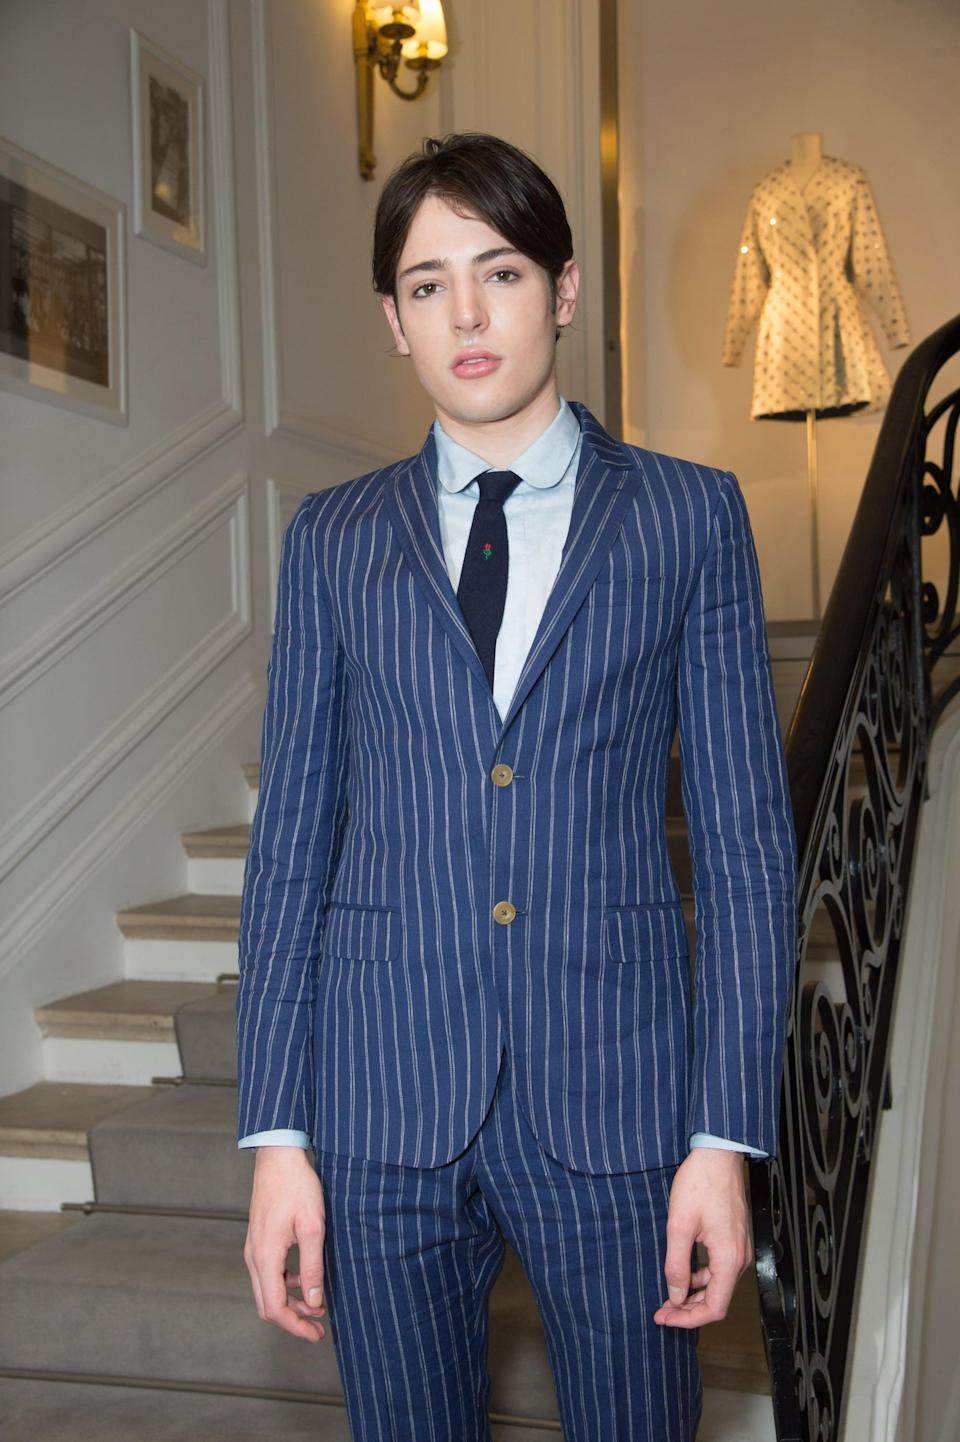 """<p>Harry Brant, son of billionaire Peter Brant and supermodel Stephanie Seymour, died at age 24. According to <strong>The New York Times</strong>, Harry died from an accidental overdose of prescription medication on Jan. 18. """"We will forever be saddened that his life was cut short by this devastating disease,"""" <a href=""""https://www.nytimes.com/2021/01/18/style/harry-brant-dead.html"""" class=""""link rapid-noclick-resp"""" rel=""""nofollow noopener"""" target=""""_blank"""" data-ylk=""""slk:his family said in a statement."""">his family said in a statement.</a></p>"""